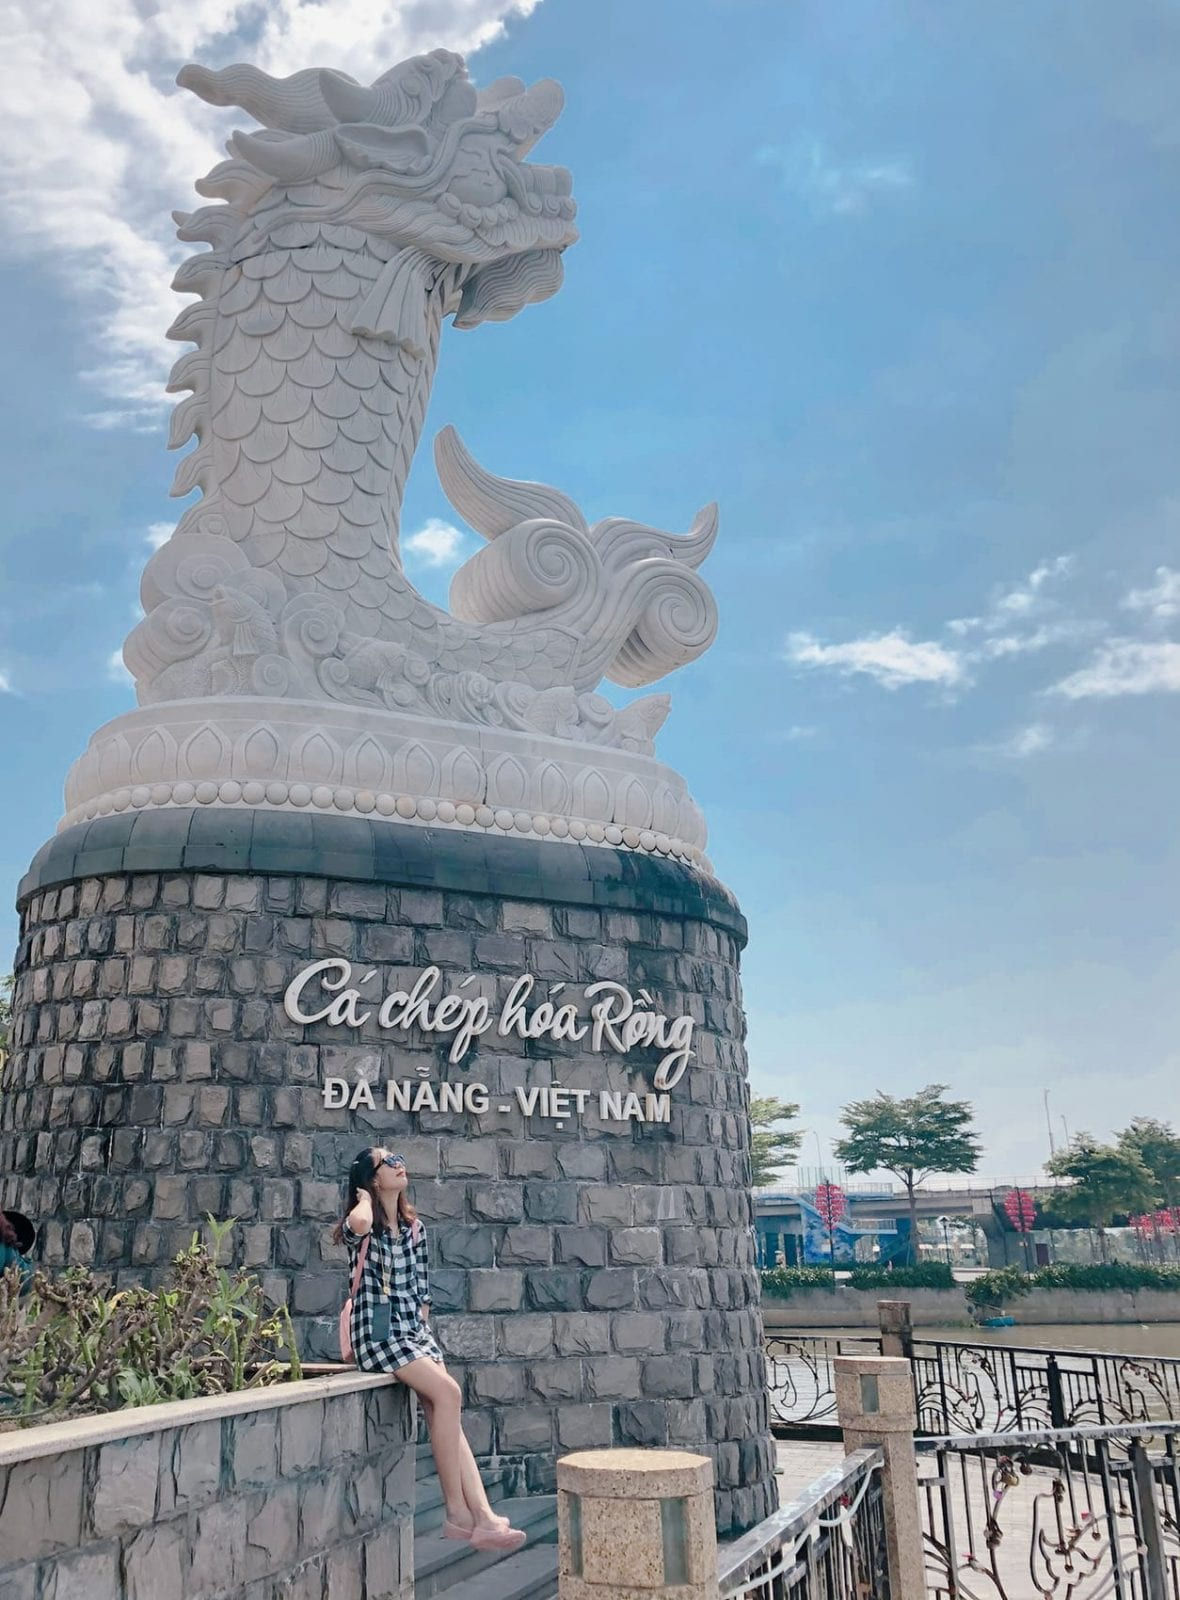 Dragon carp in Da Nang, Vietnam